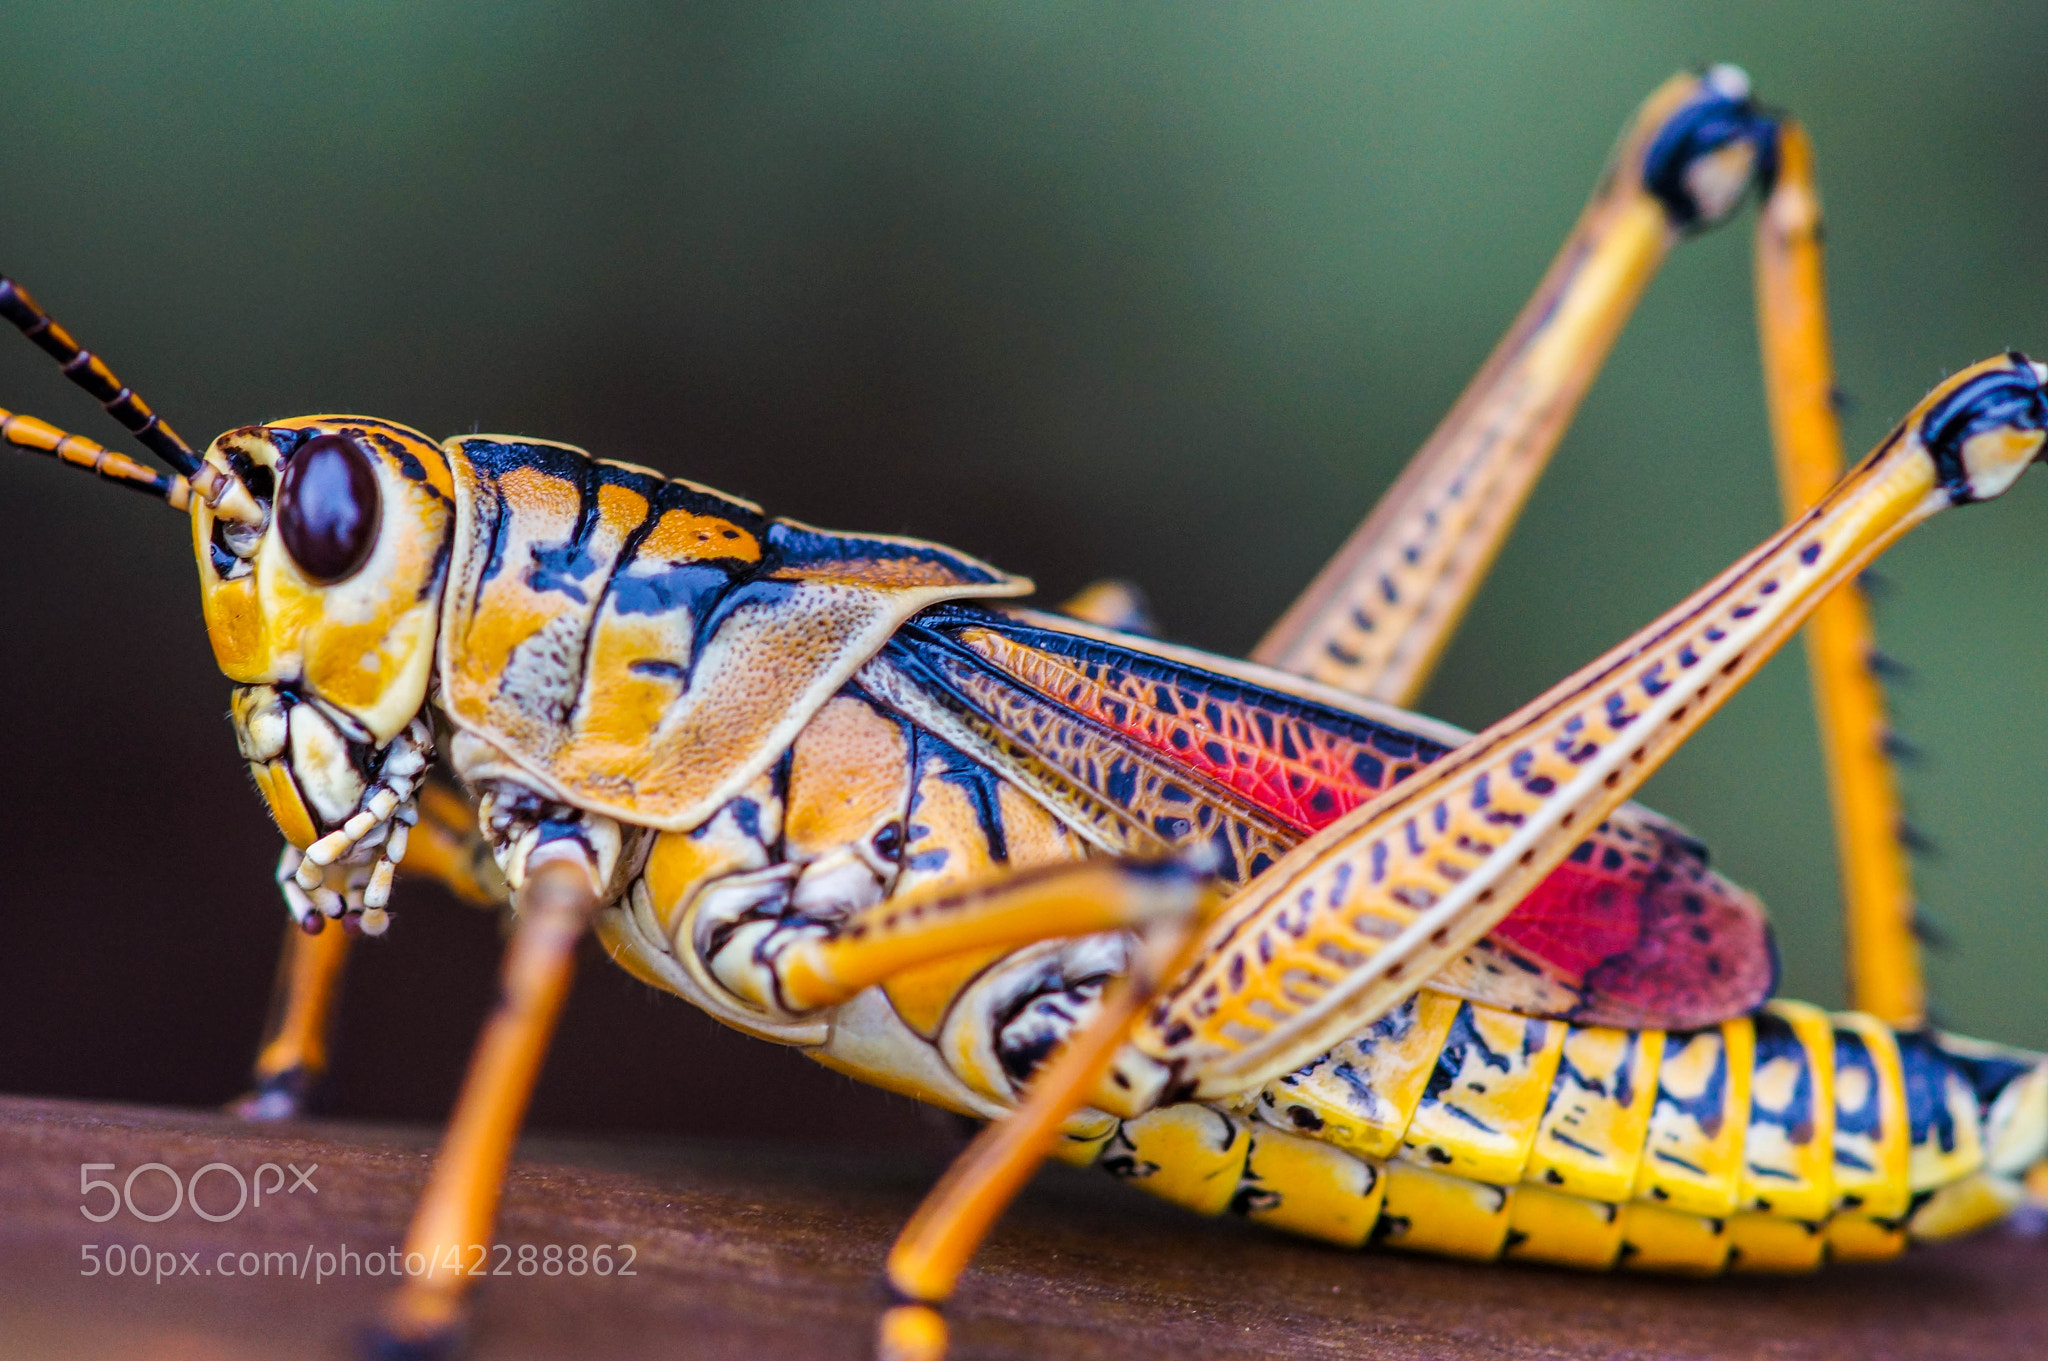 Photograph Grasshopper by Alyssa Paraggio on 500px